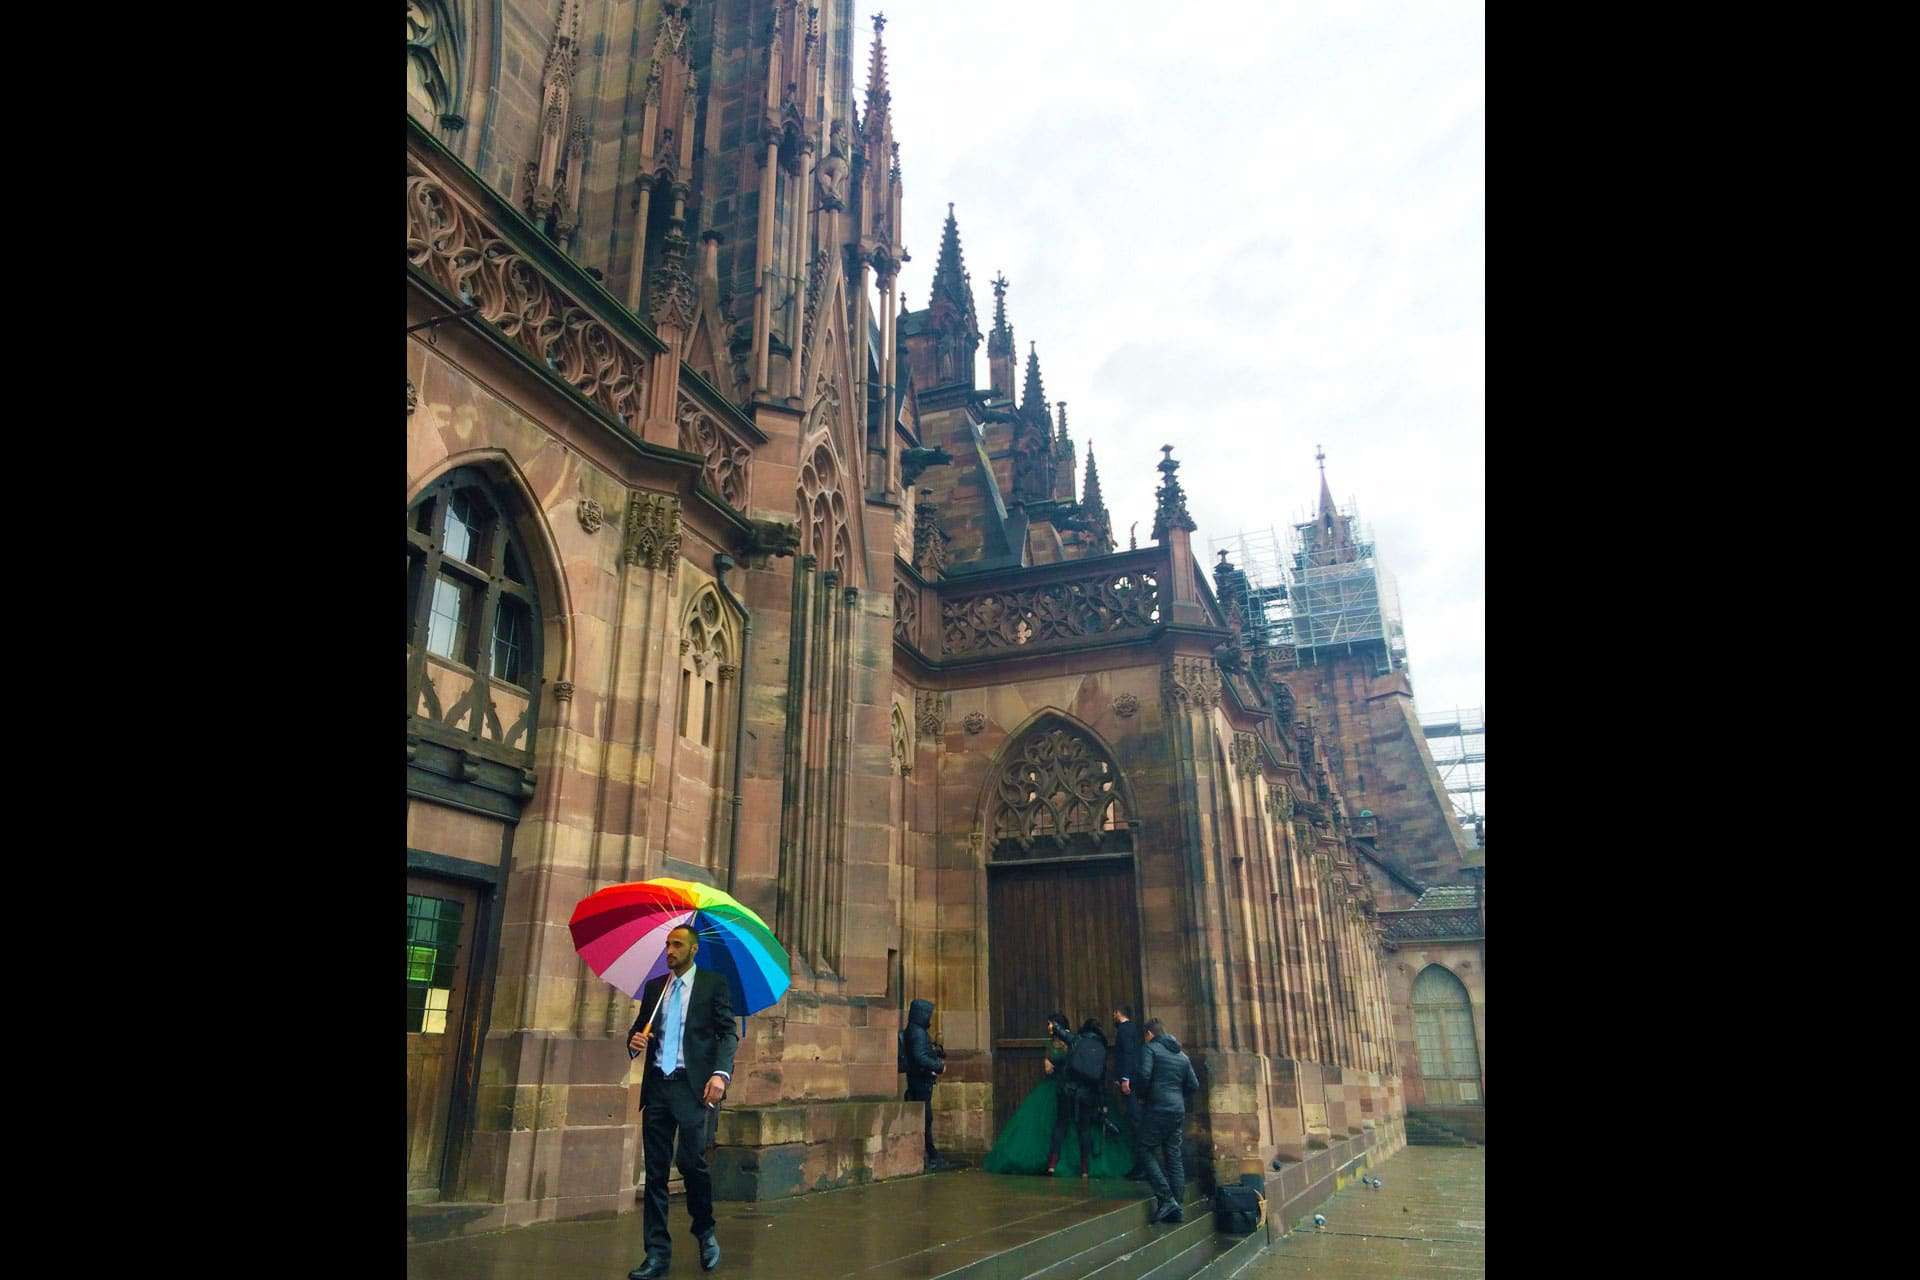 Notre Dame of Strasbourg on a rainy day!